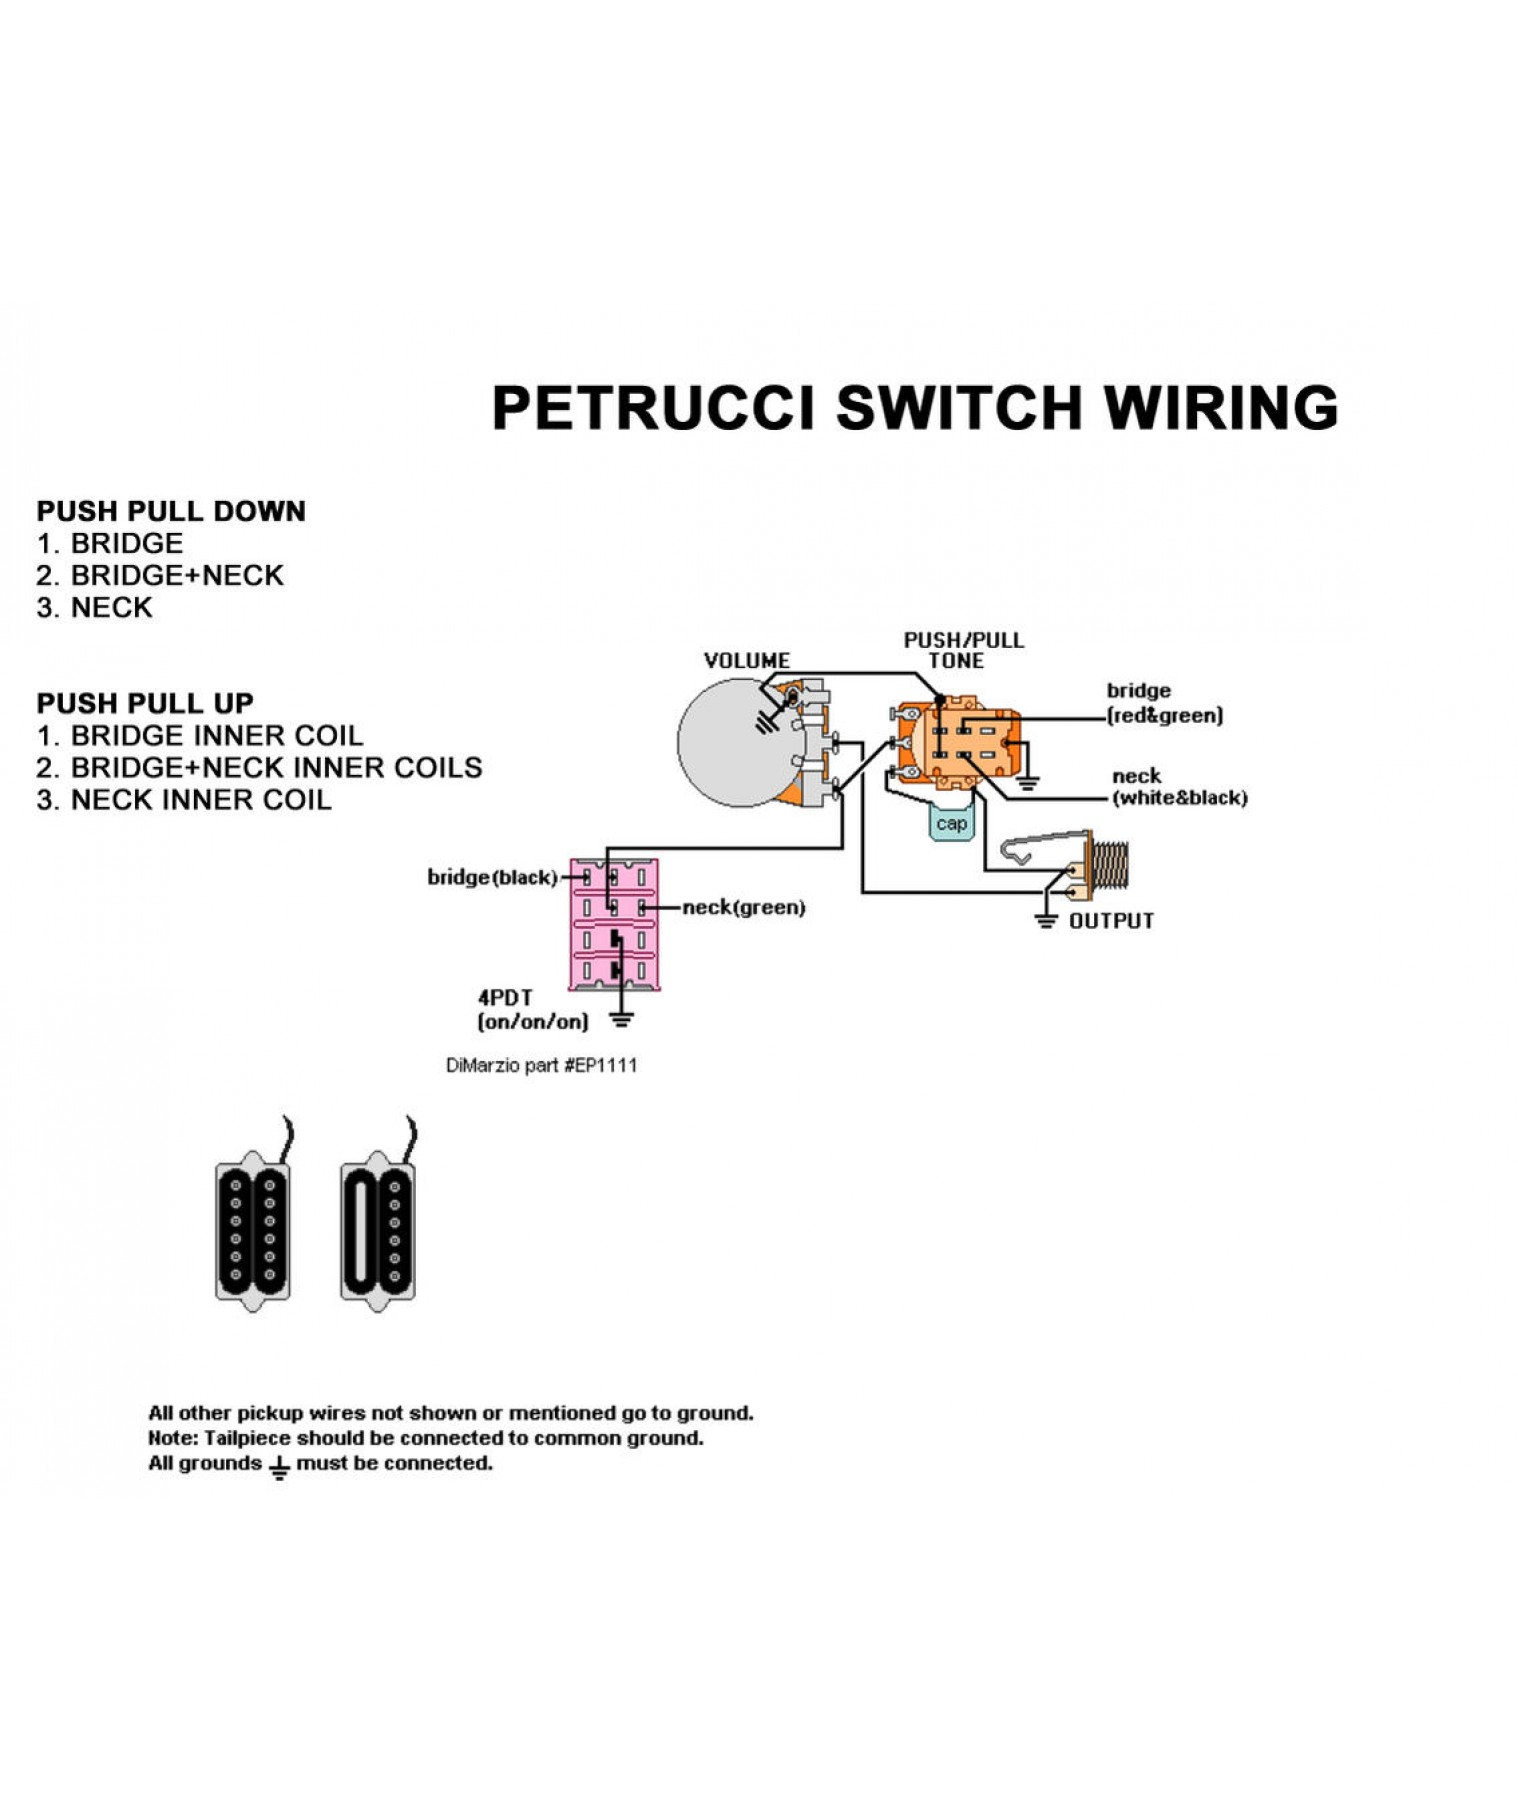 Wiring diagram for dimarzio humbuckers yhgfdmuor net dimarzio b wiring diagram diagram get free image about wiring, wiring diagram, 4PDT Switch